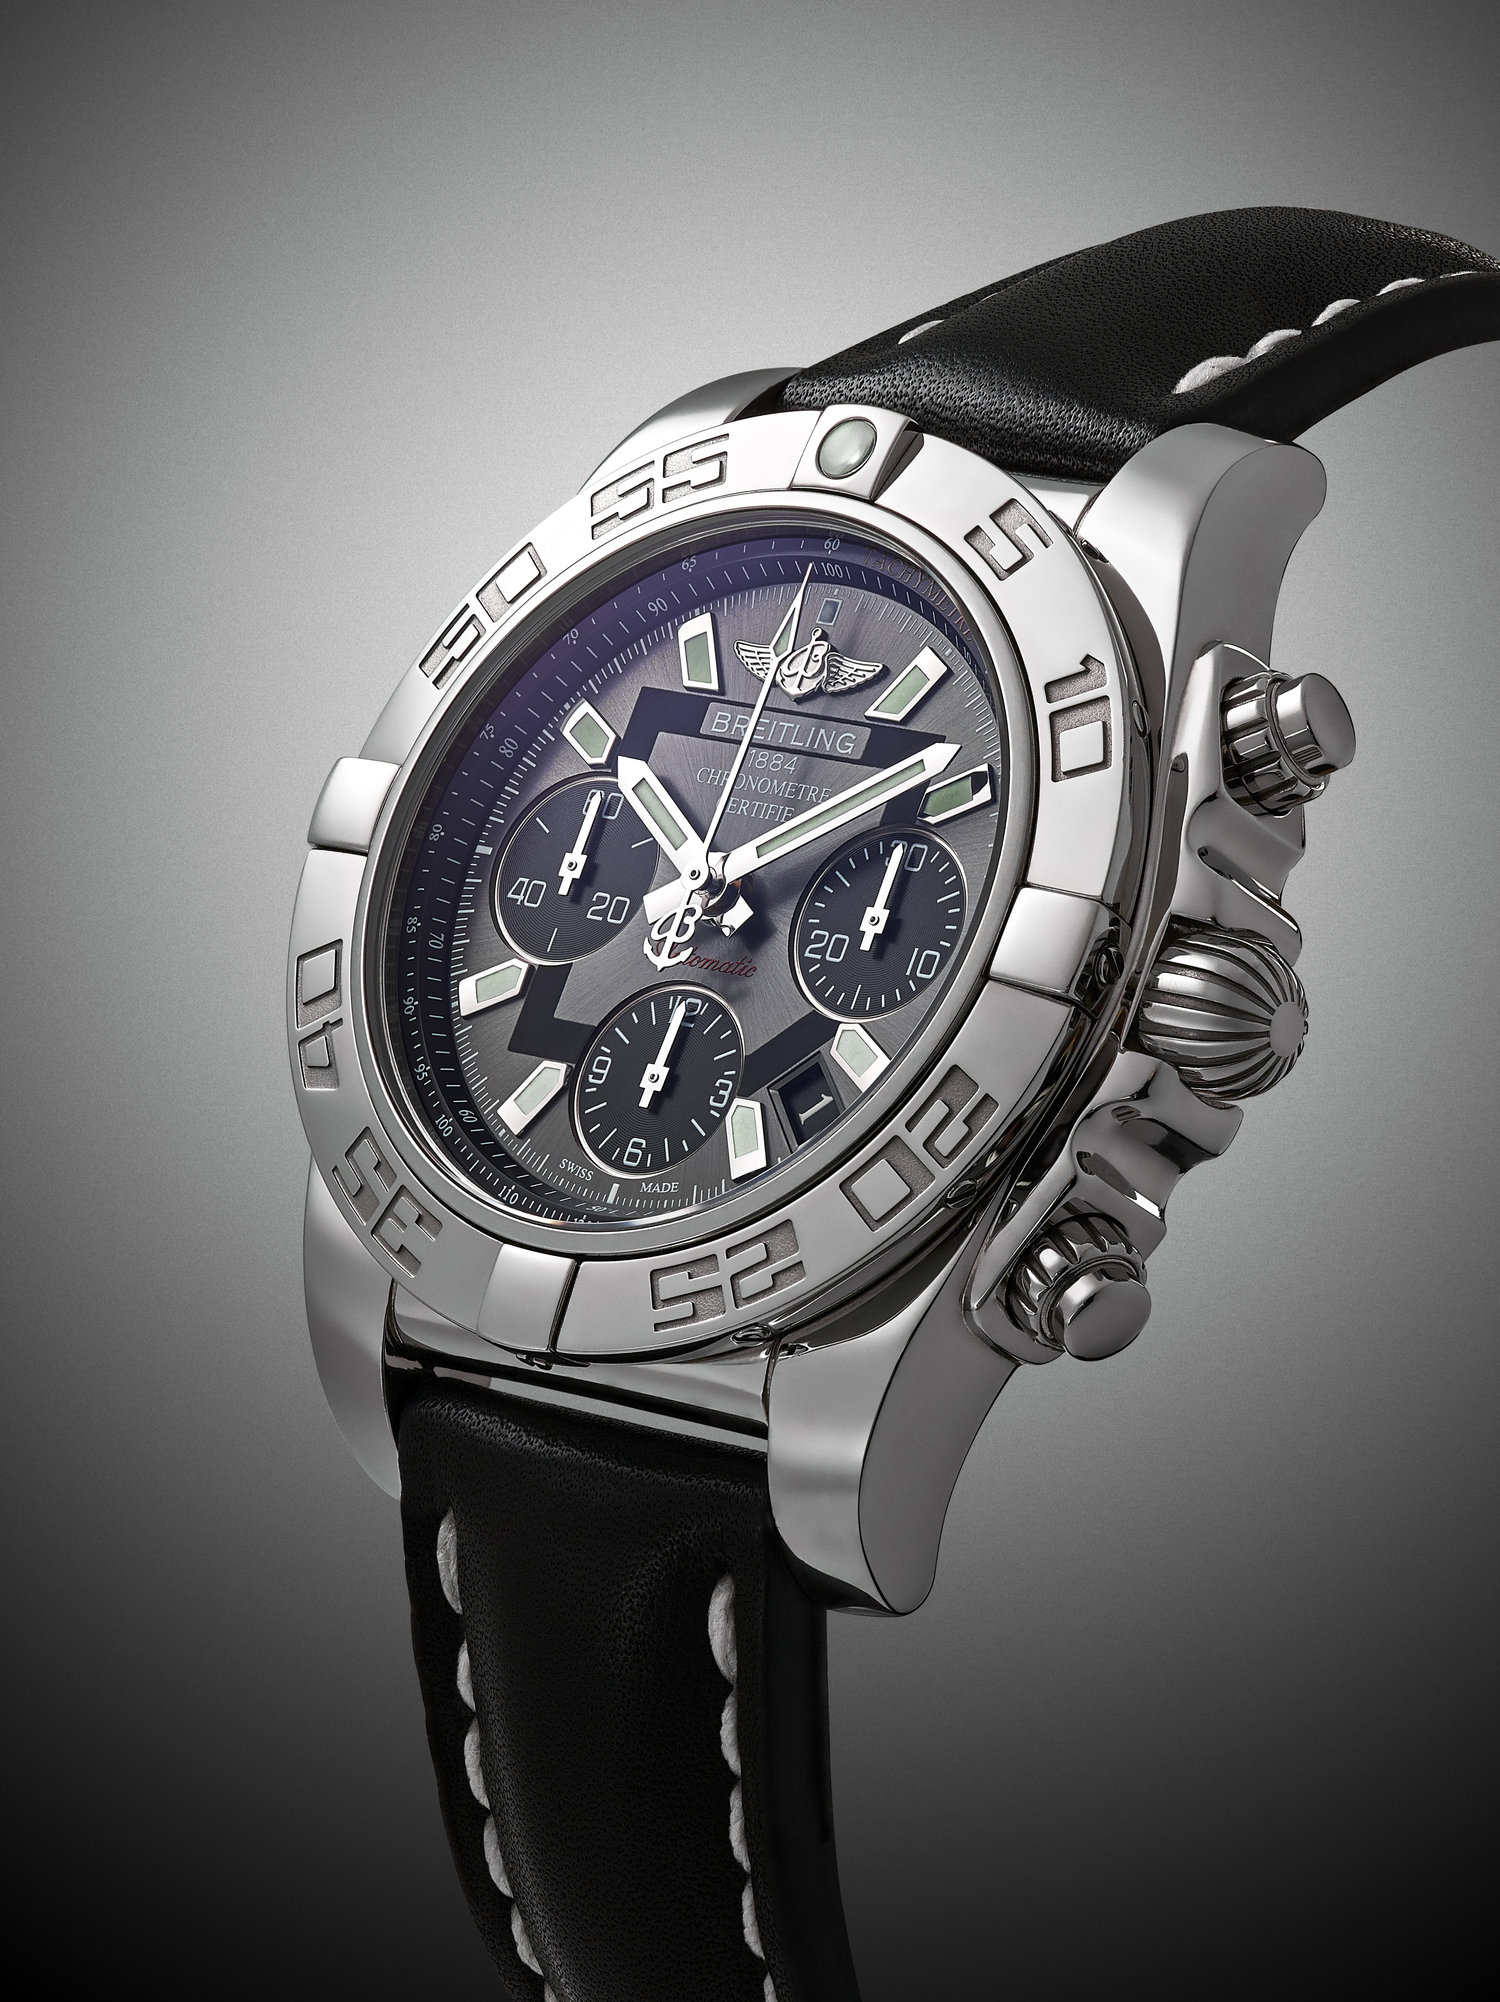 Watch And Product Photography By Jonny Wilson